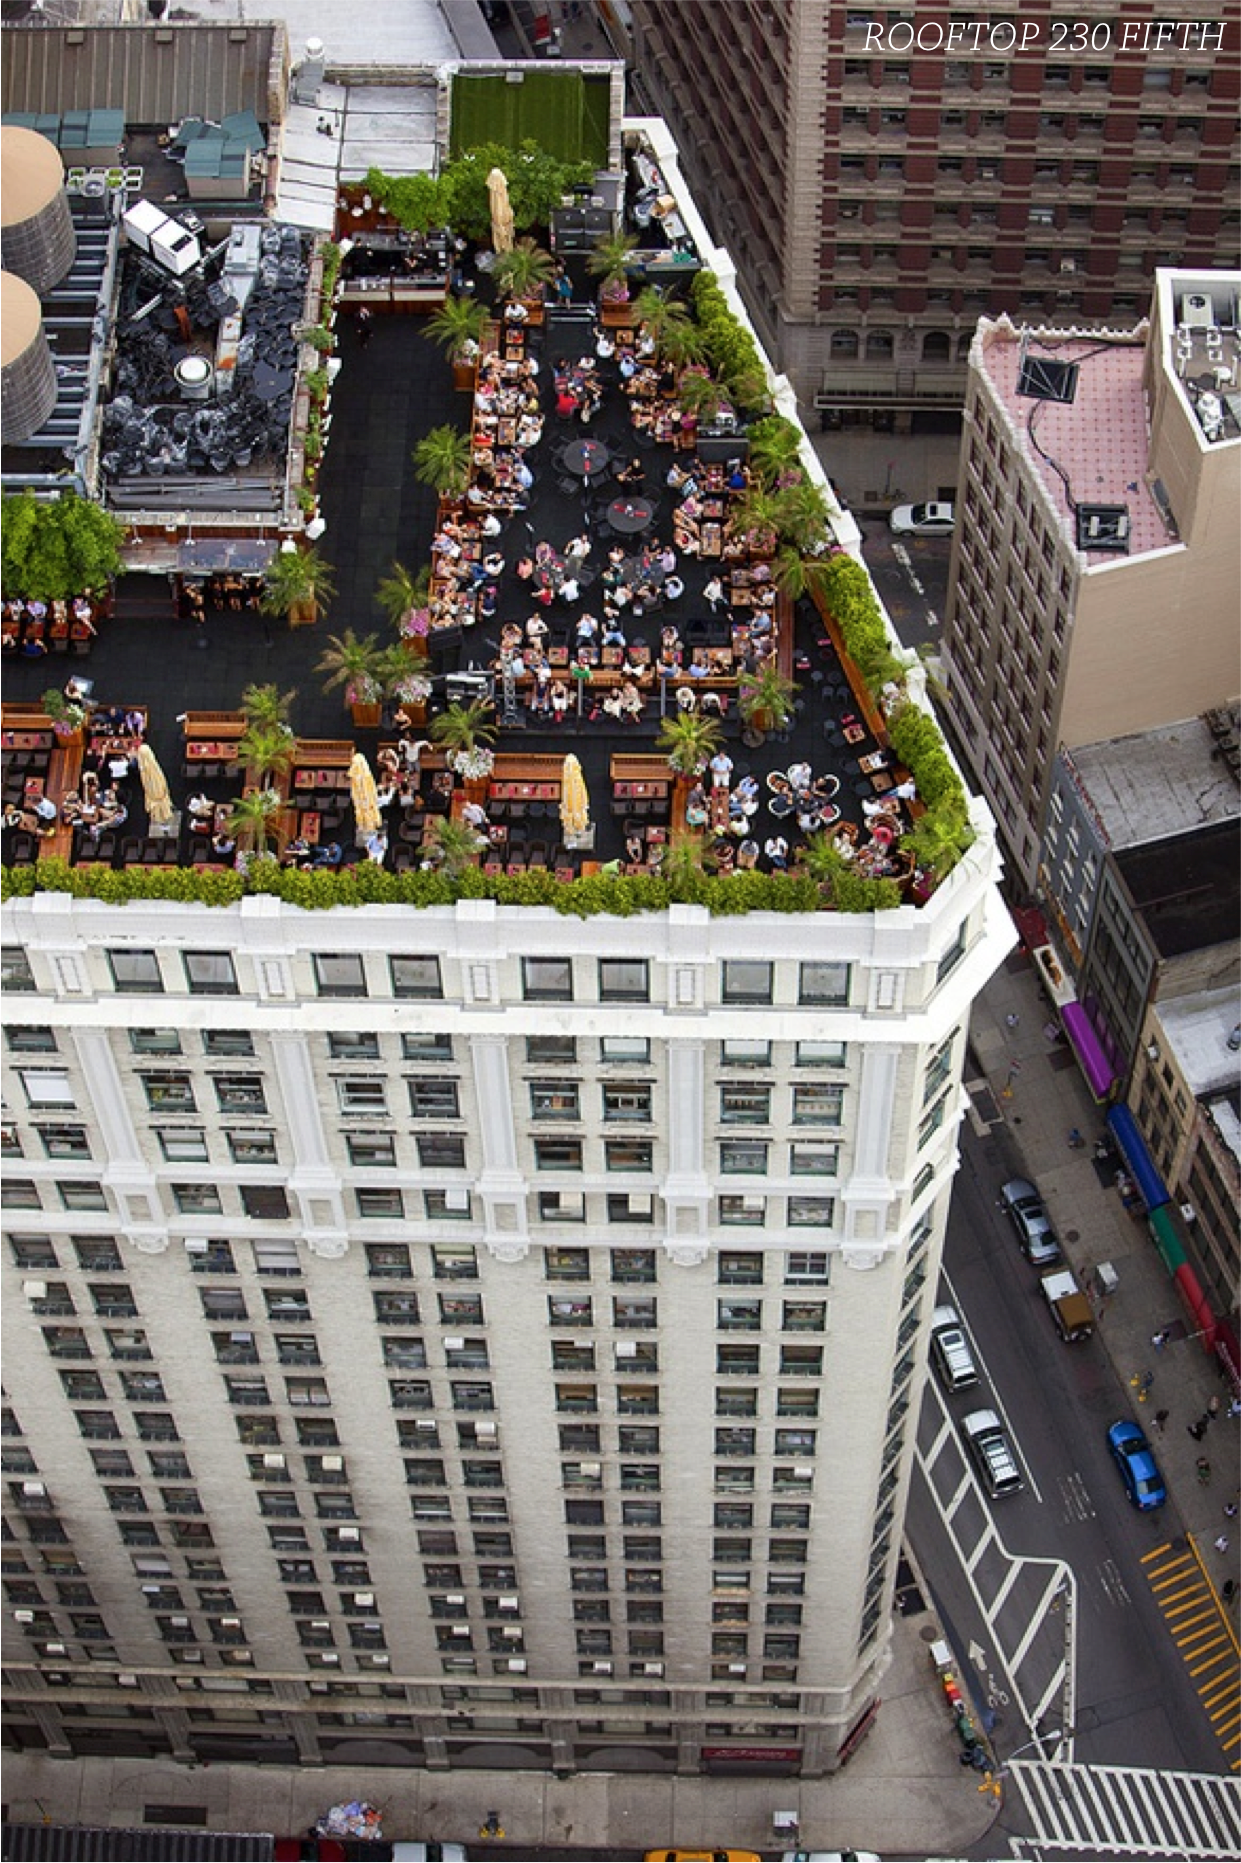 ROOFTOP-NY-DICA-230-FIFITH